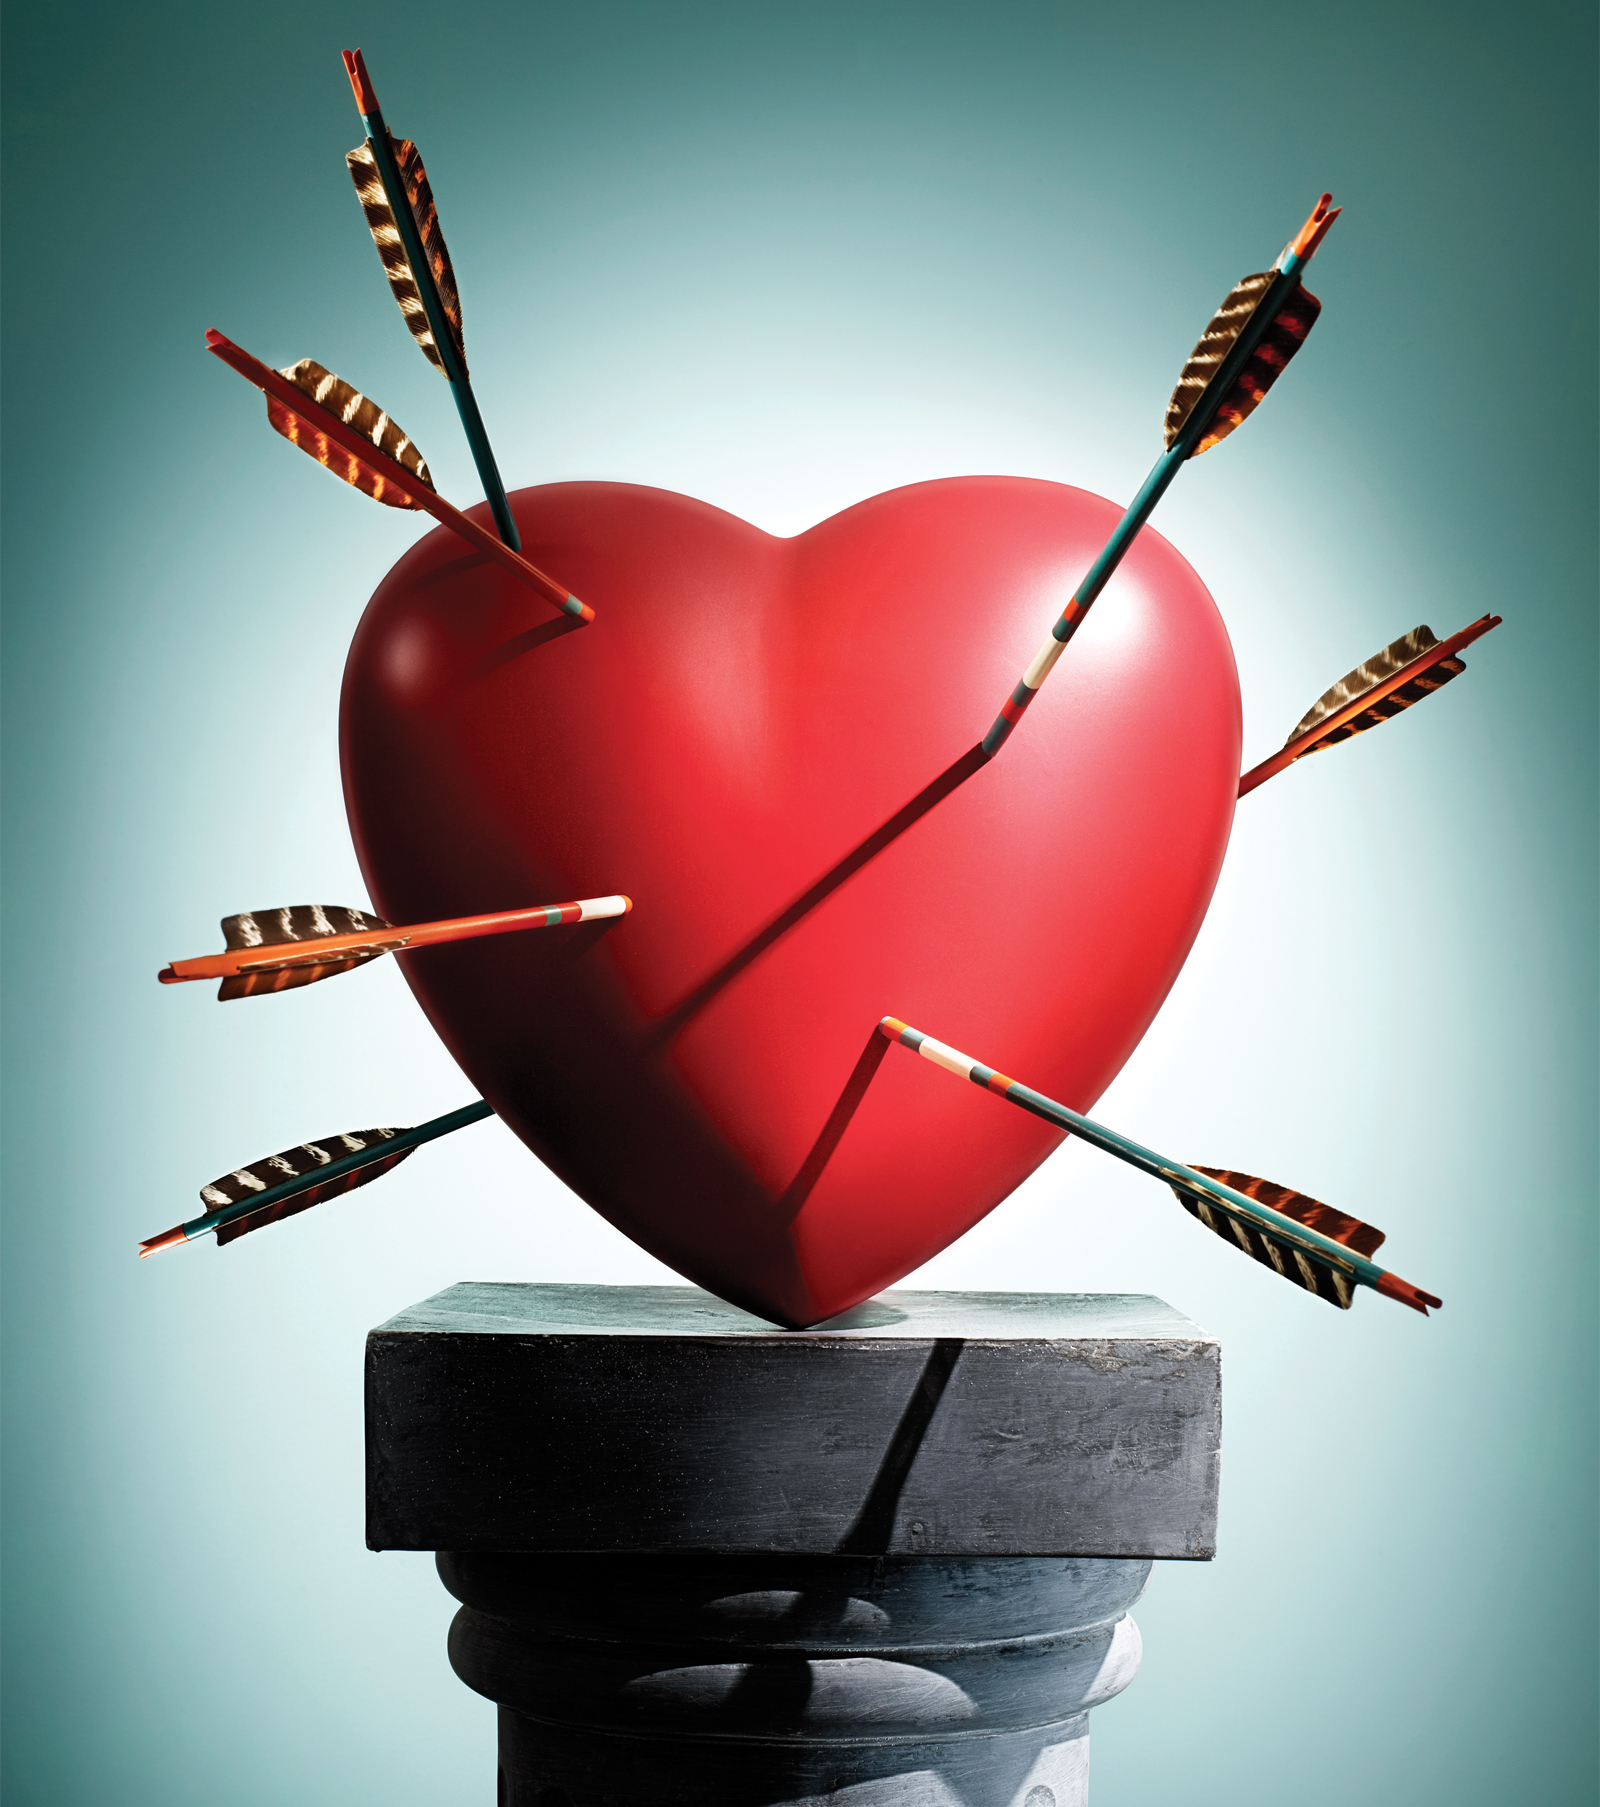 Red heart on pedestal stuck with arrows, Feb 13, p112